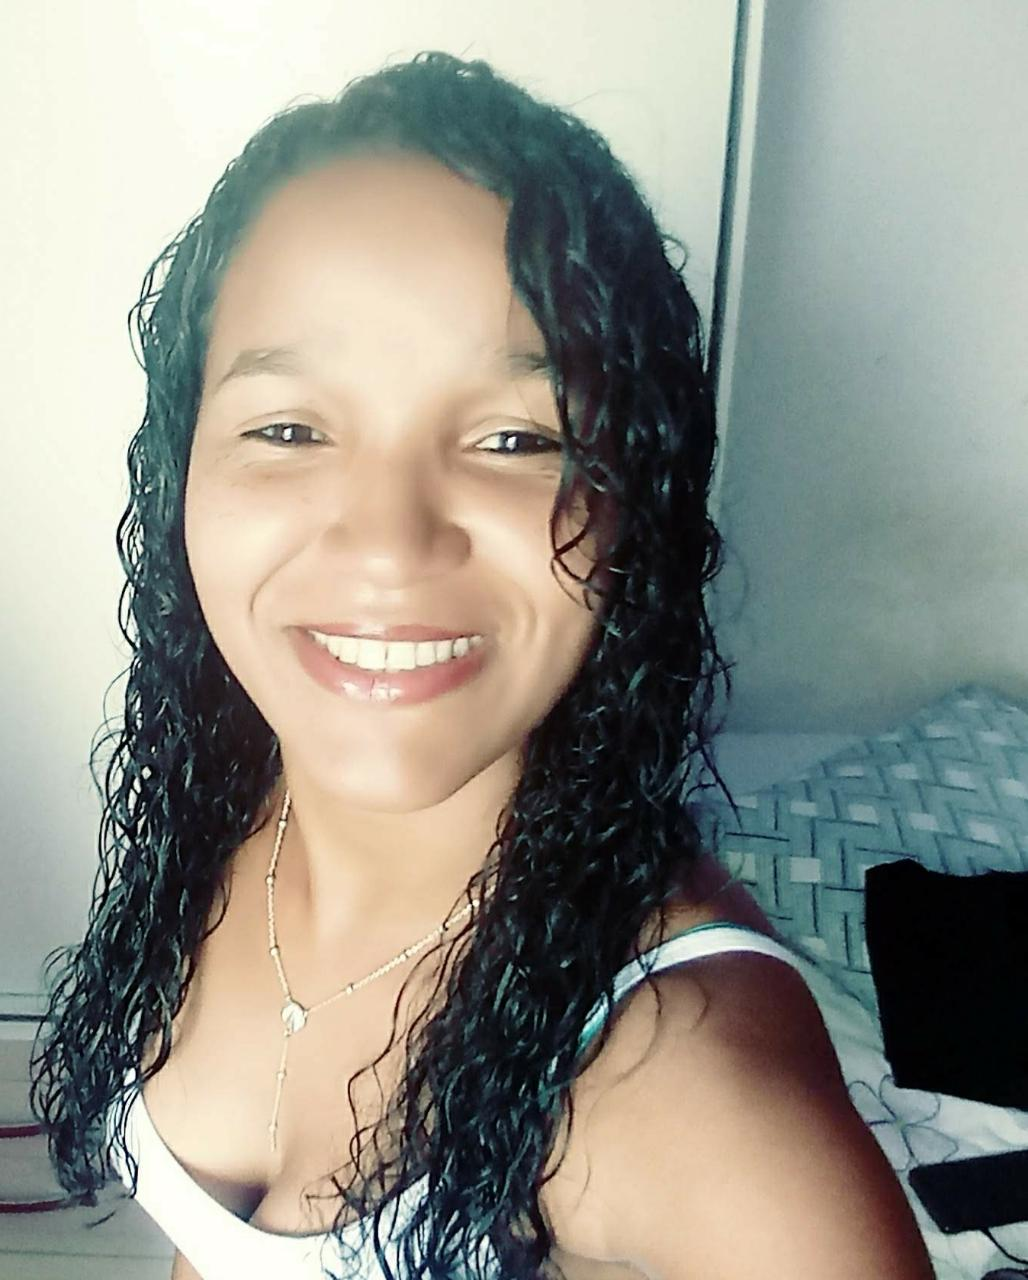 Suelen Evelyn Costa dos Santos